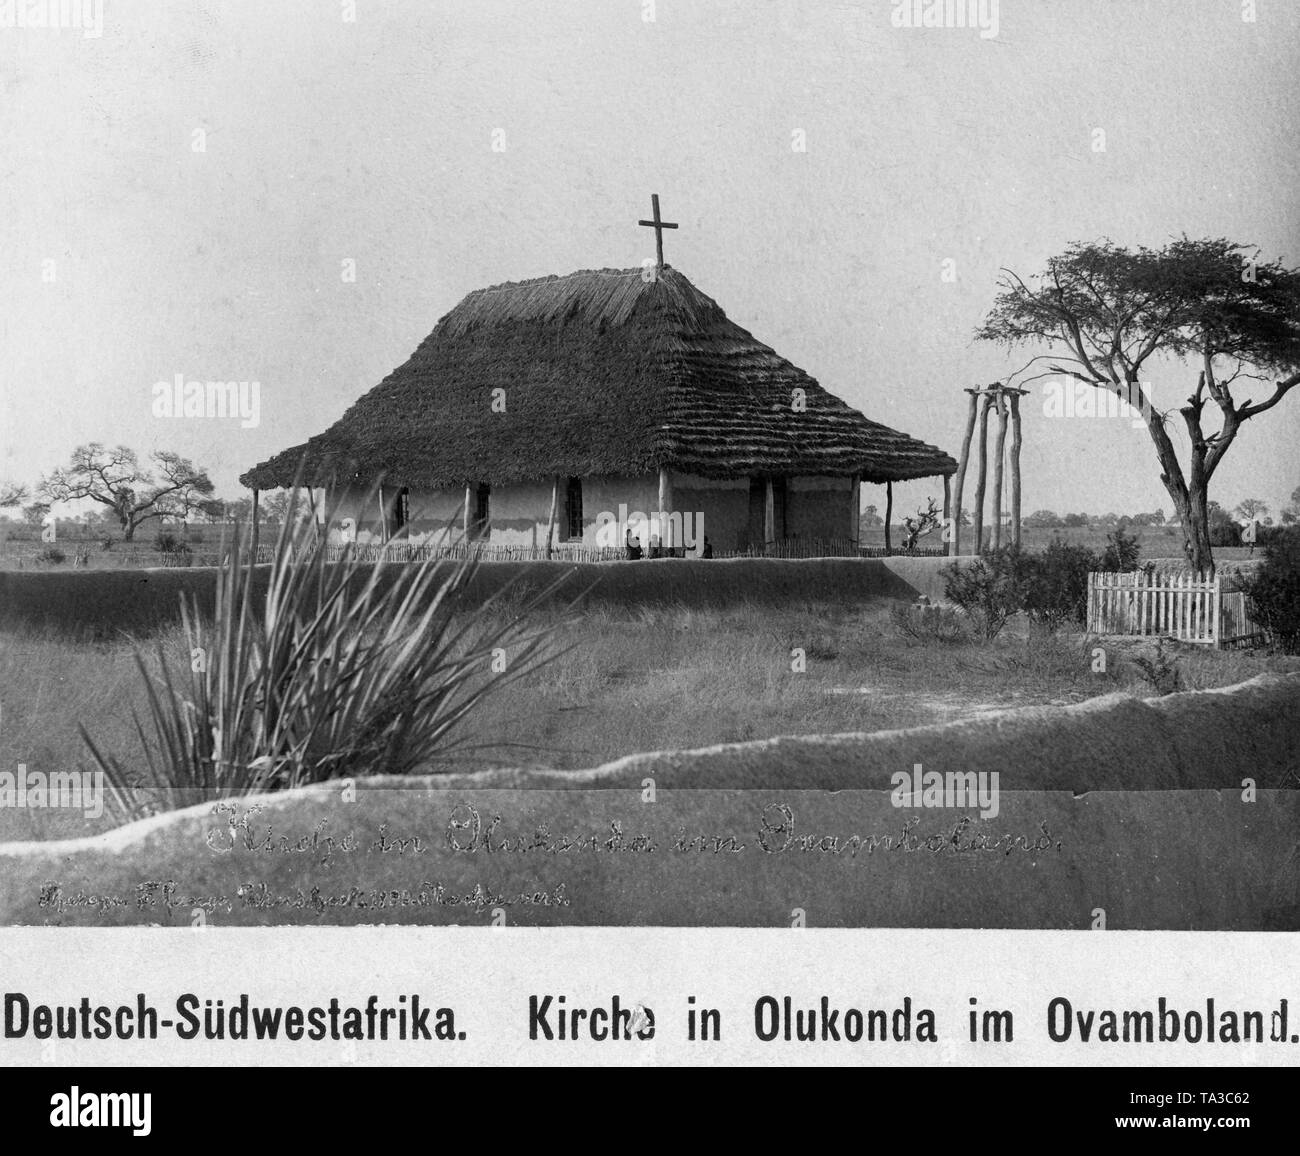 The first Protestant church built in 1889 in German South West Africa. It was built in Olukonda in Ovamboland. - Stock Image